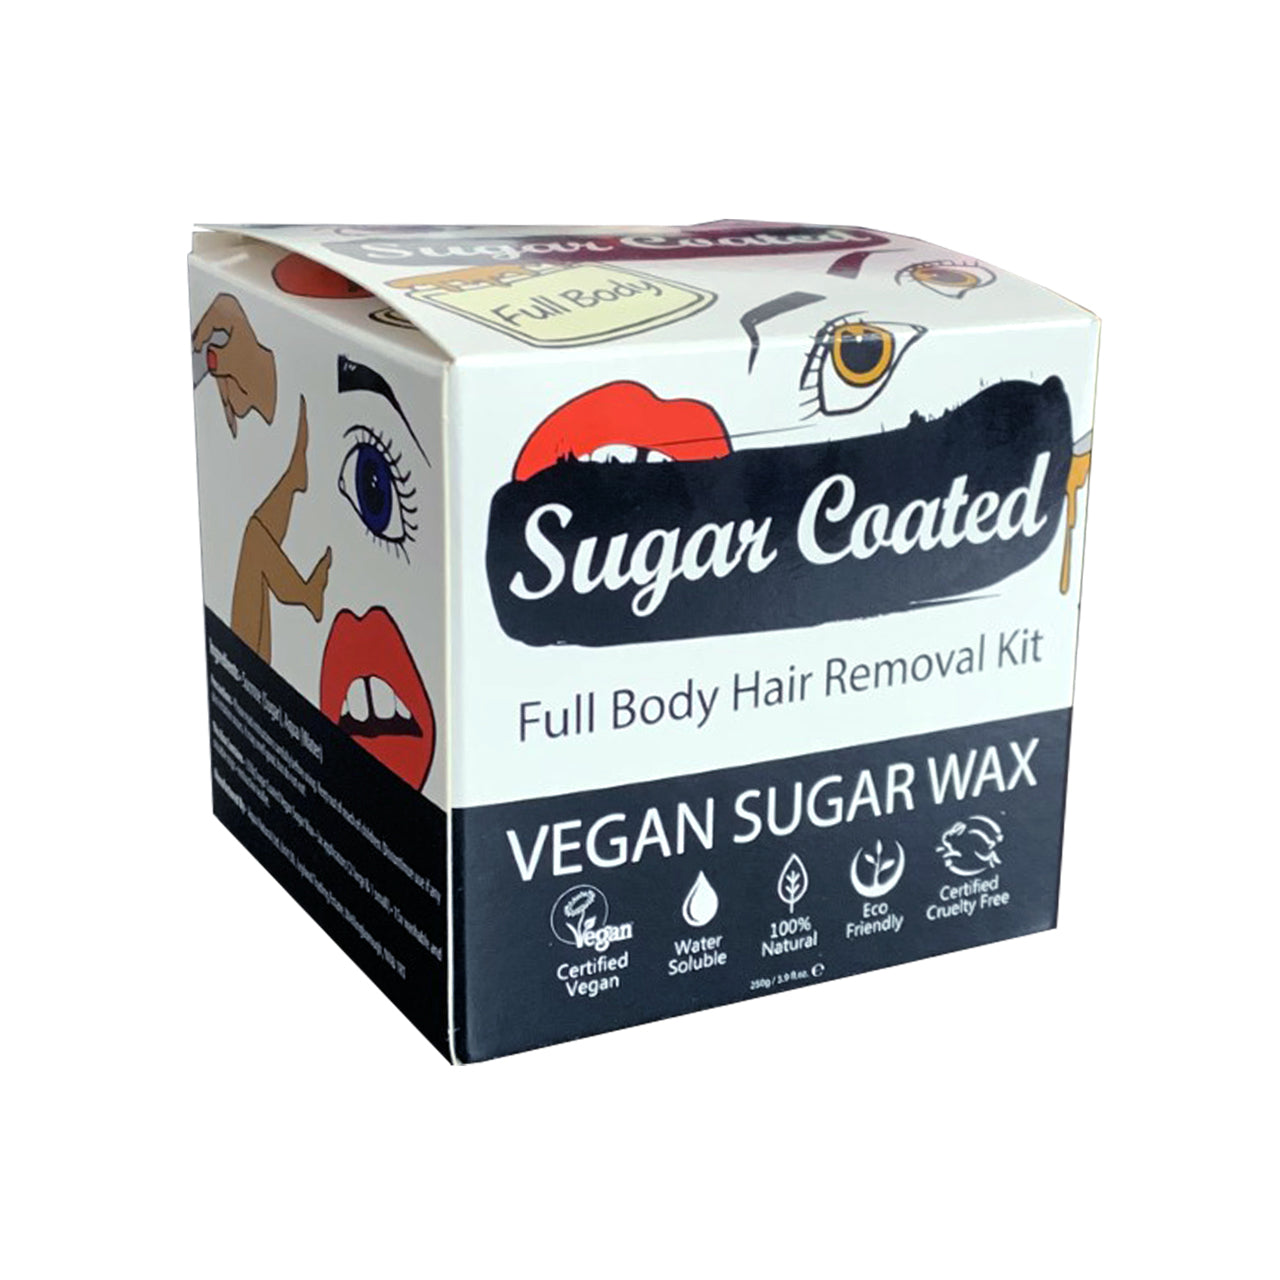 Sugar Coated Full Body box angled view with icons showing: Vegan, water-soluble, natural, eco-friendly, cruelty-free